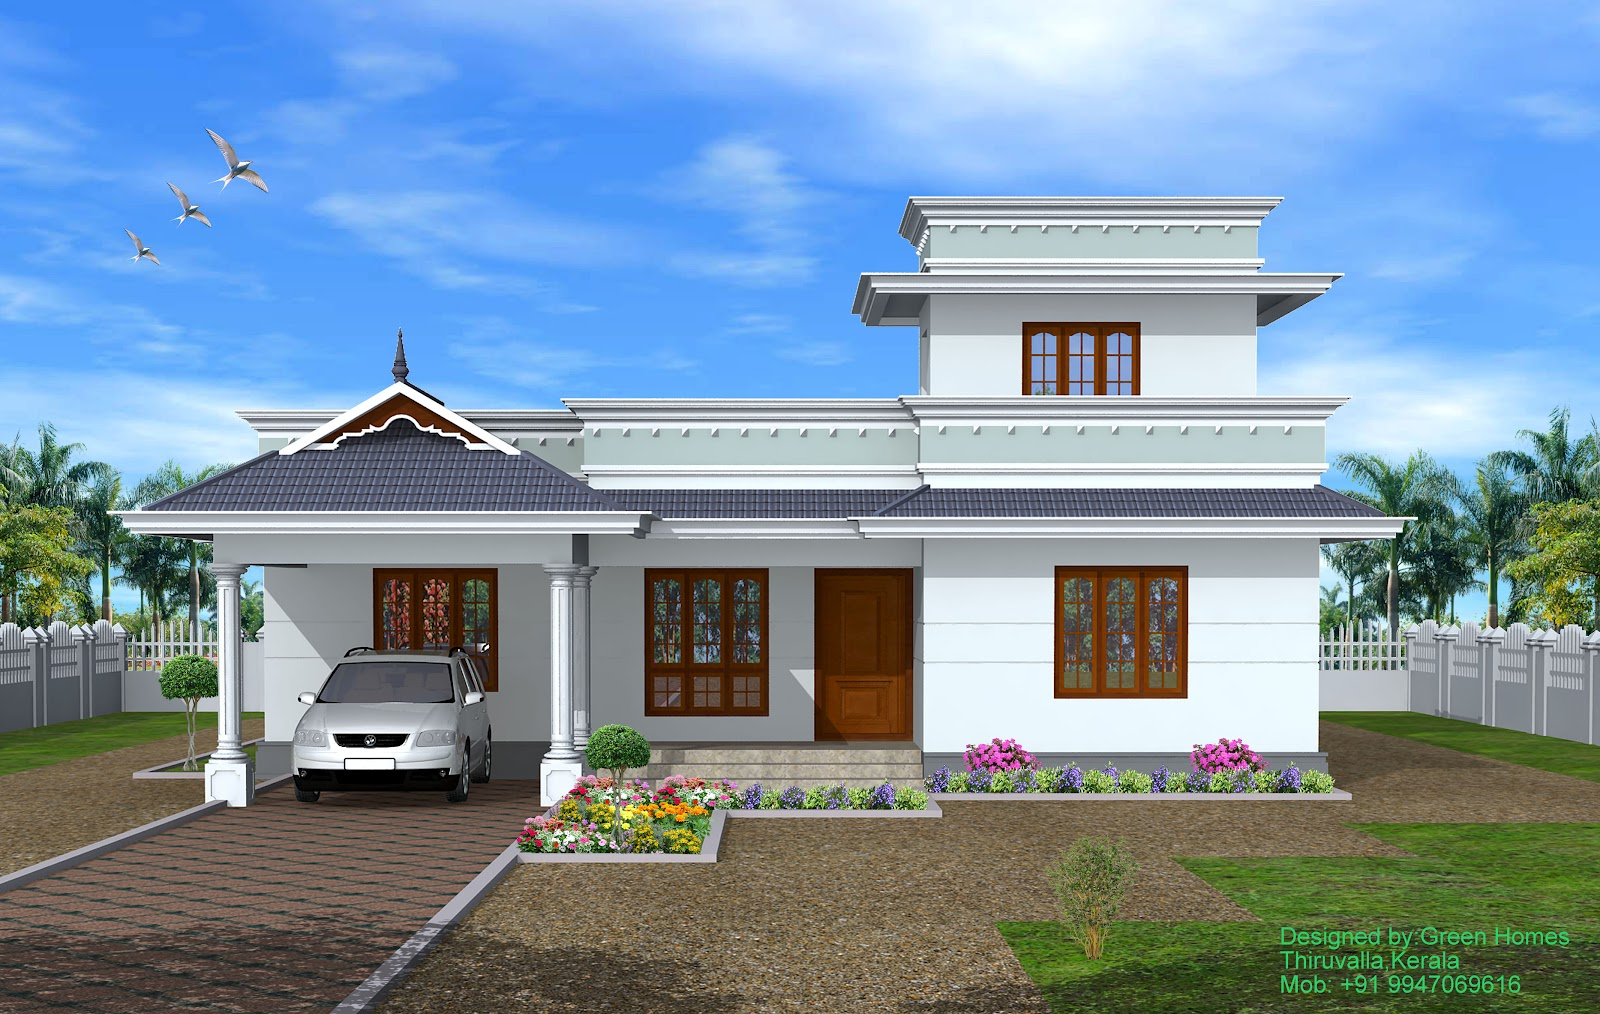 Green Homes: Kerala 4 BHK Single Storey House-1950 Sq.feet